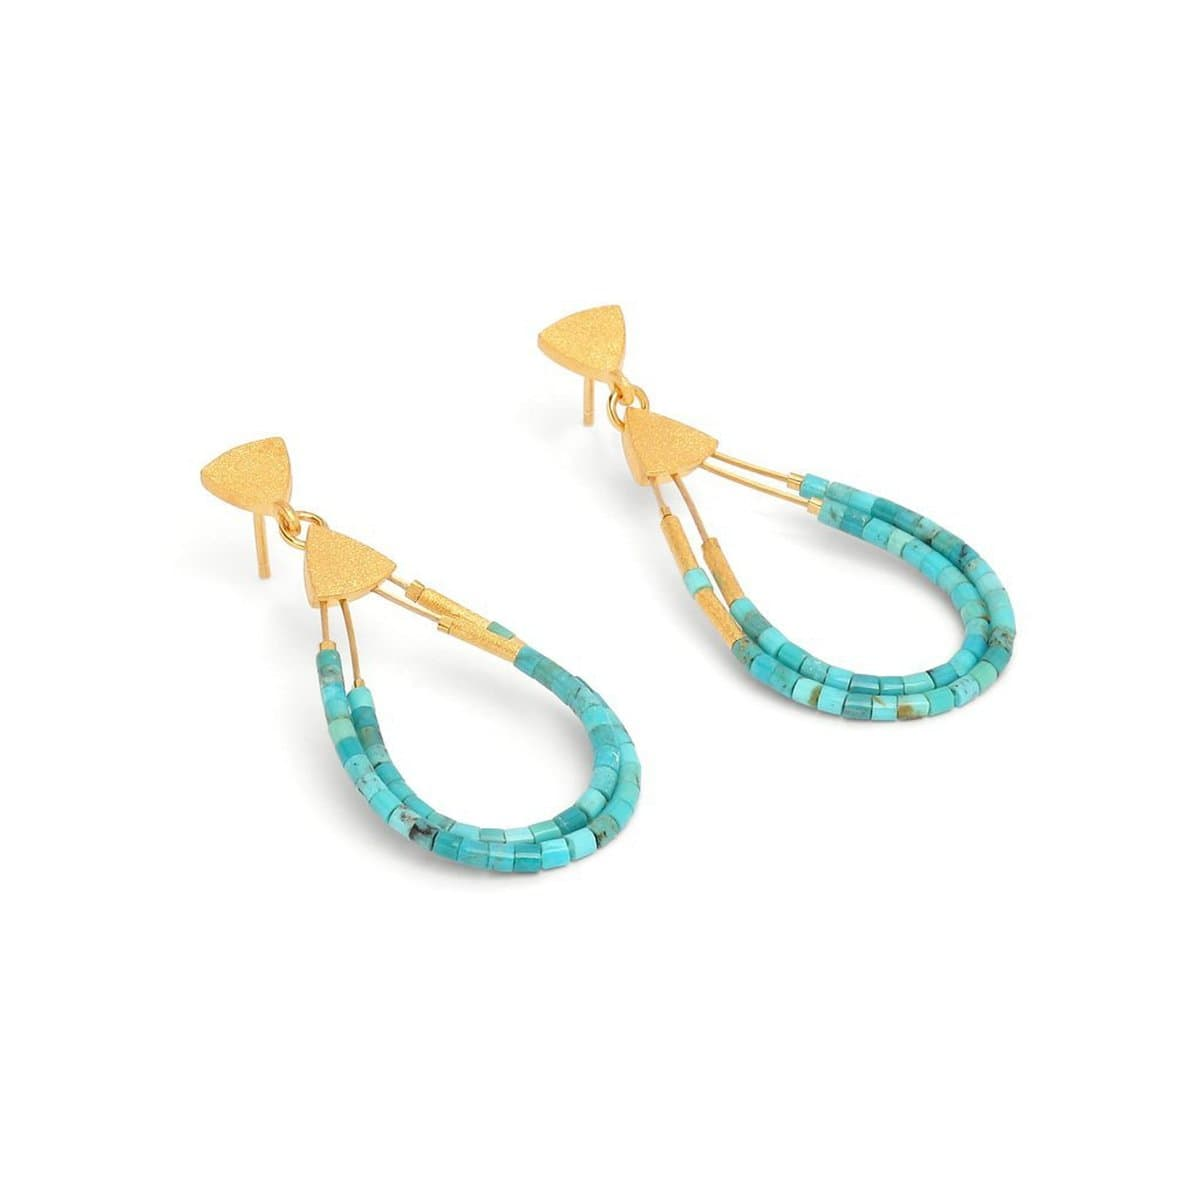 Cleni Turquoise Earrings - 15585256 - Bernd Wolf